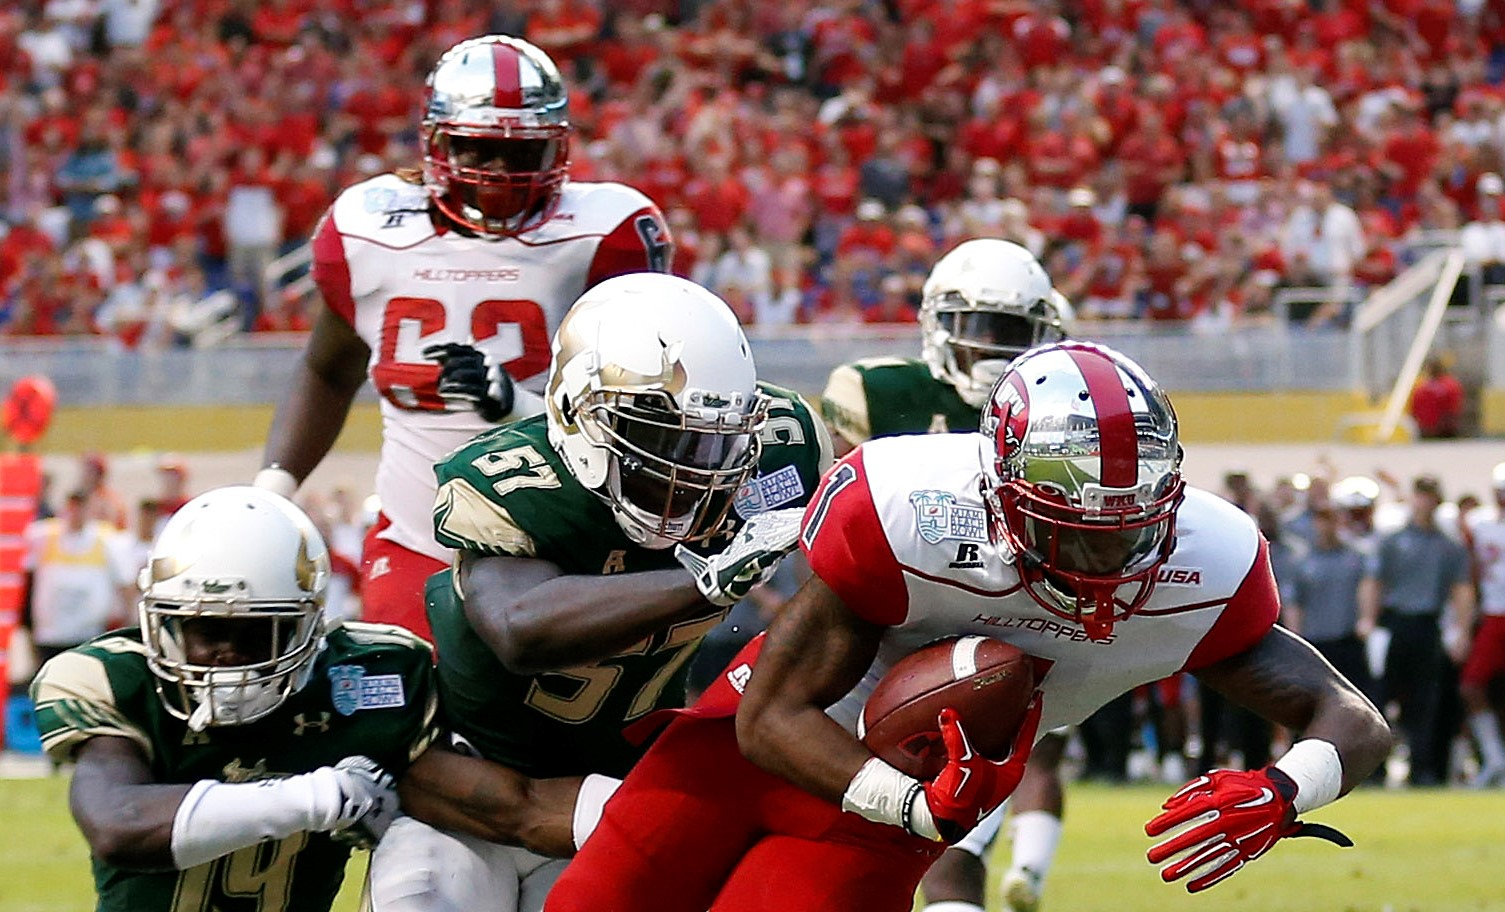 Dec 21, 2015; Miami, FL, USA;Western Kentucky Hilltoppers wide receiver Nacarius Fant (1) scores a touchdown as South Florida Bulls linebacker Nigel Harris (57) and South Florida Bulls cornerback Ronnie Hoggins (19) both make the tackle in the end zone during the second half in the 2015 Miami Beach Bowl at Marlins Park. Mandatory Credit: Steve Mitchell-USA TODAY Sports